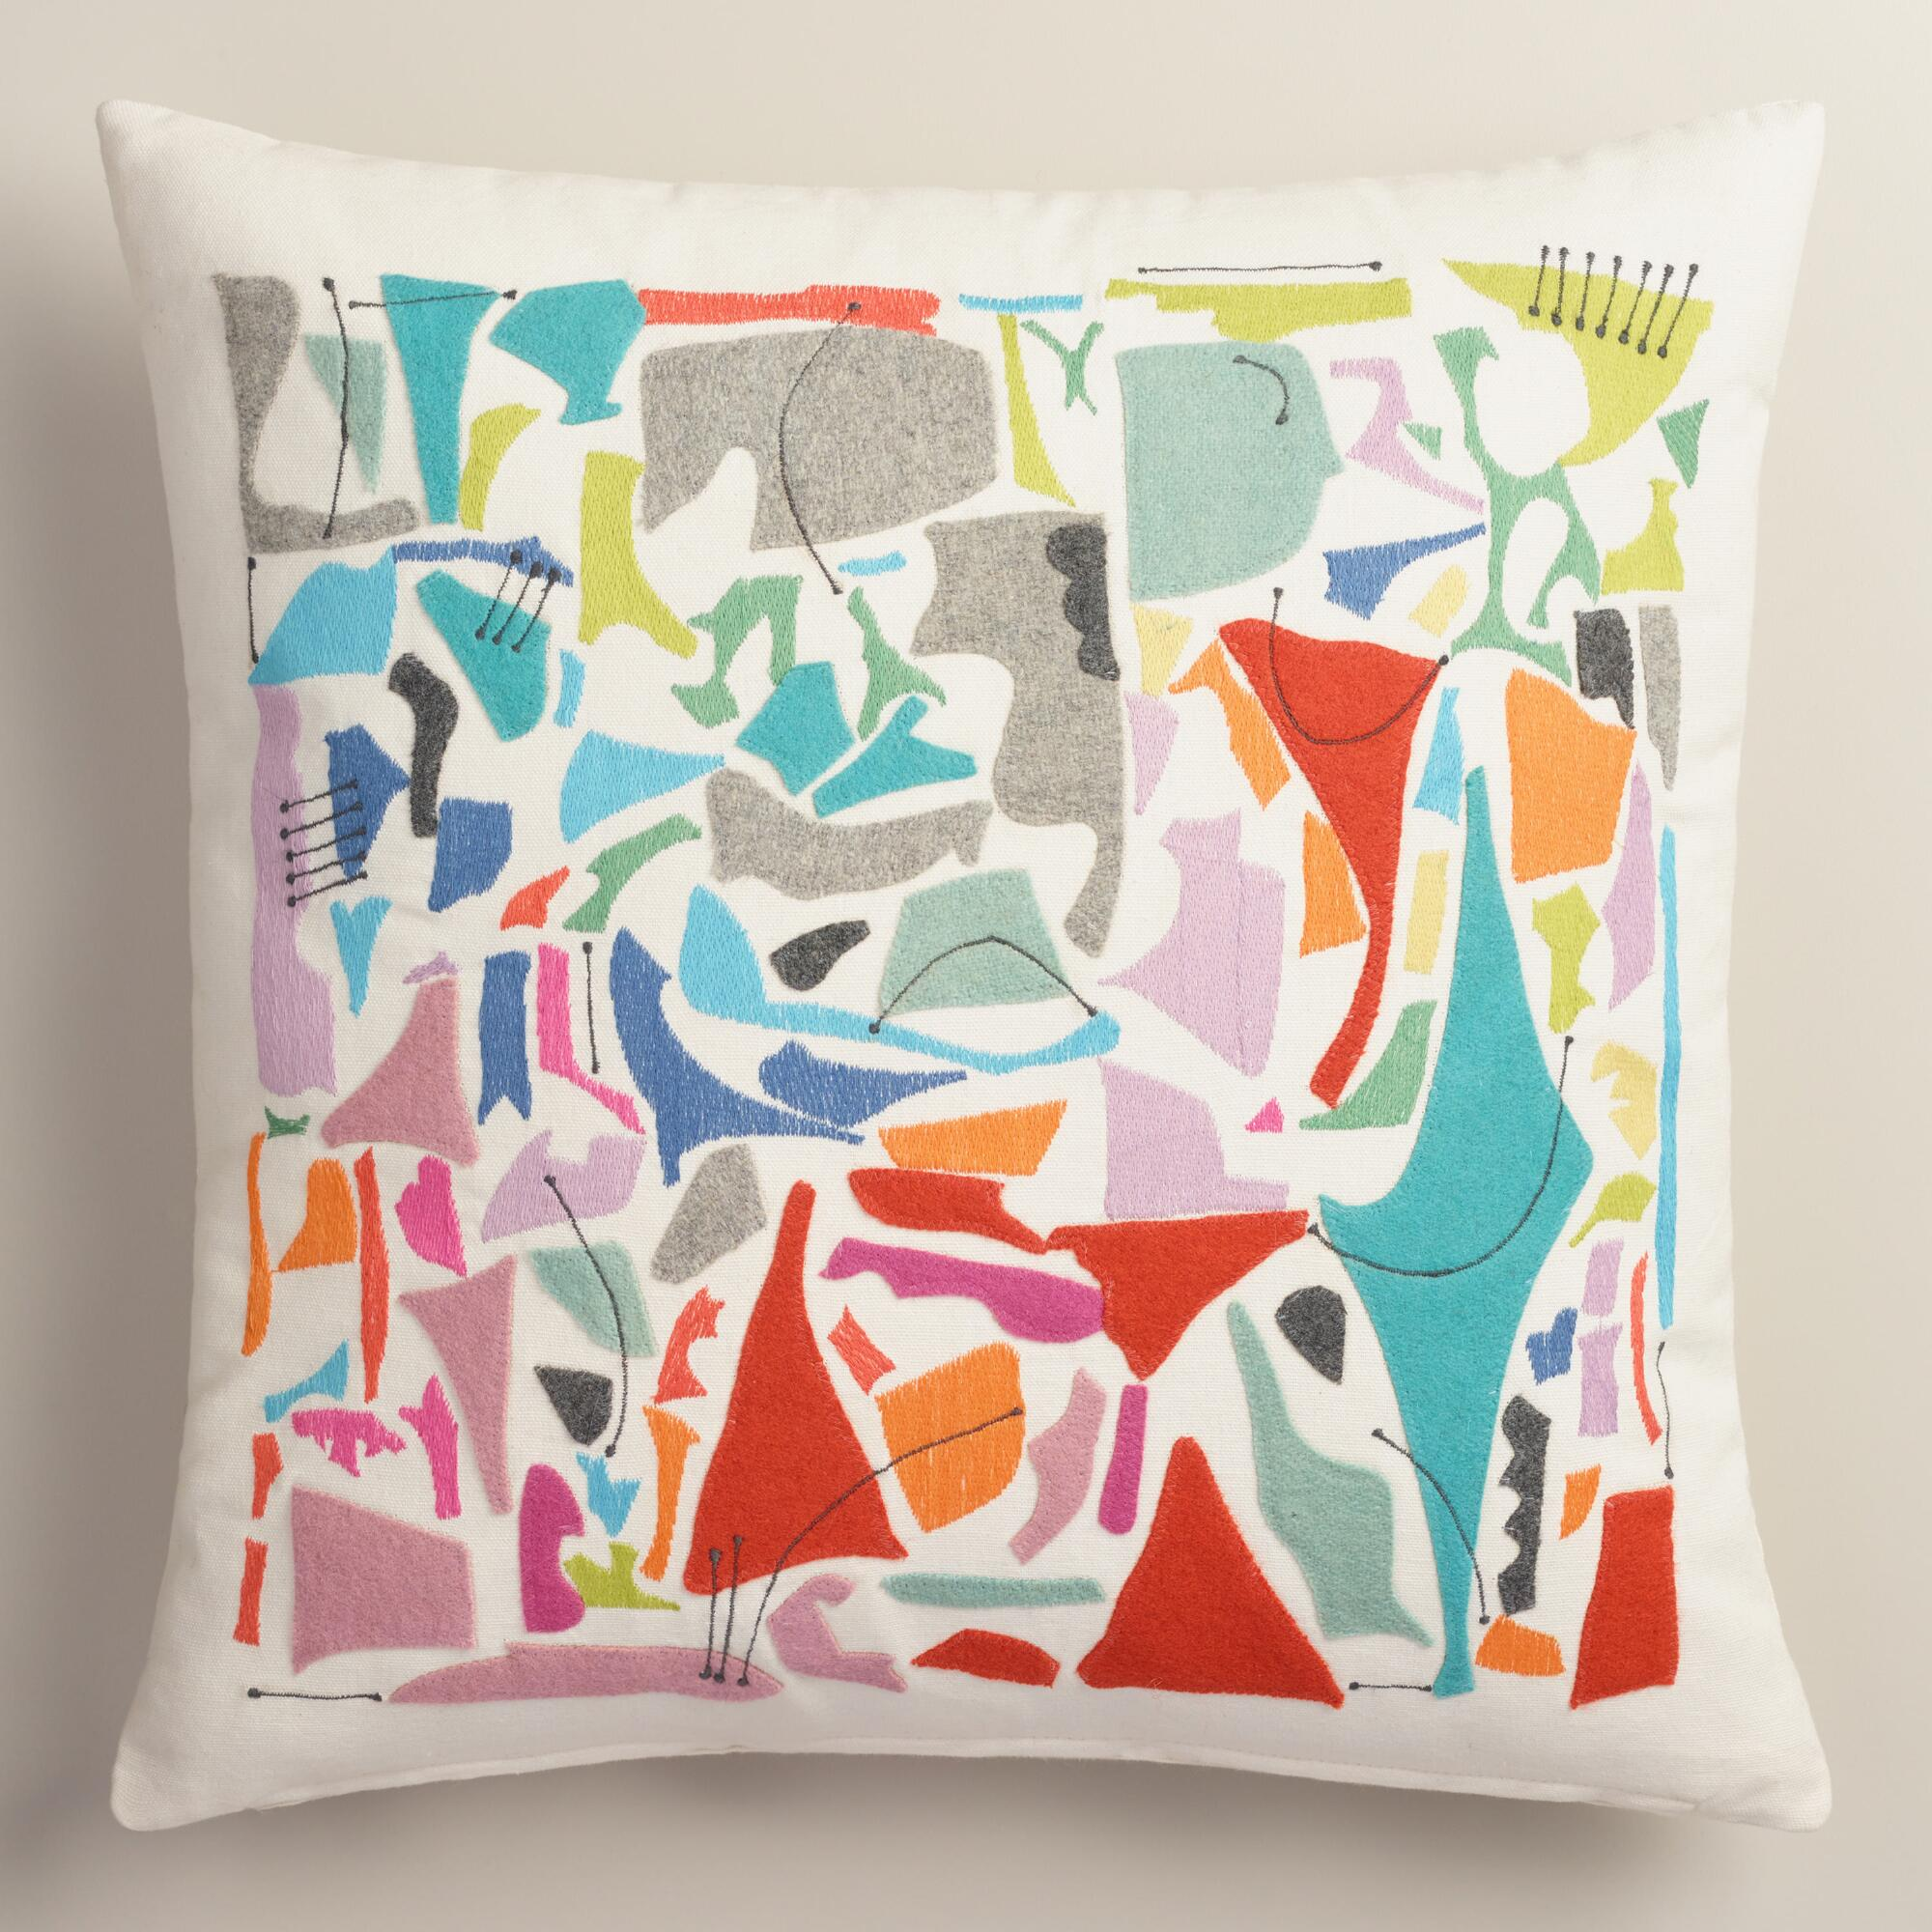 Vintage Style Throw Pillows : Vintage Style Felt Cutout Throw Pillow World Market